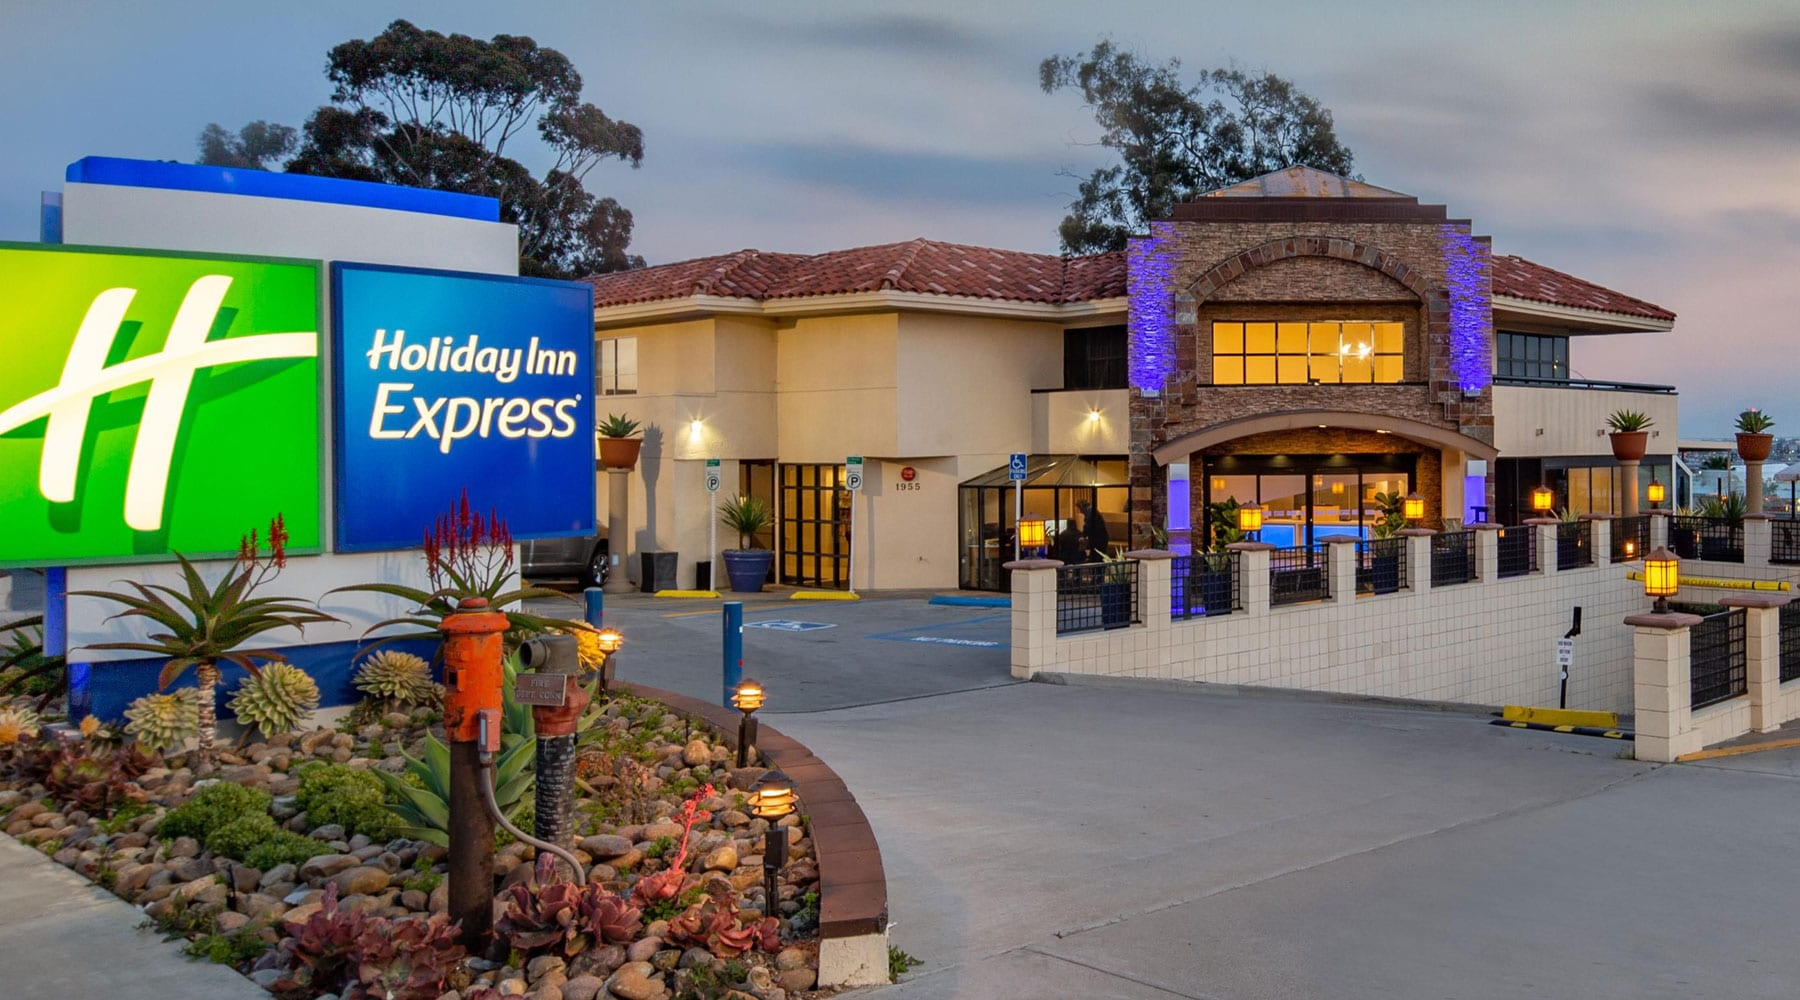 Holiday Inn Express Mission Hills